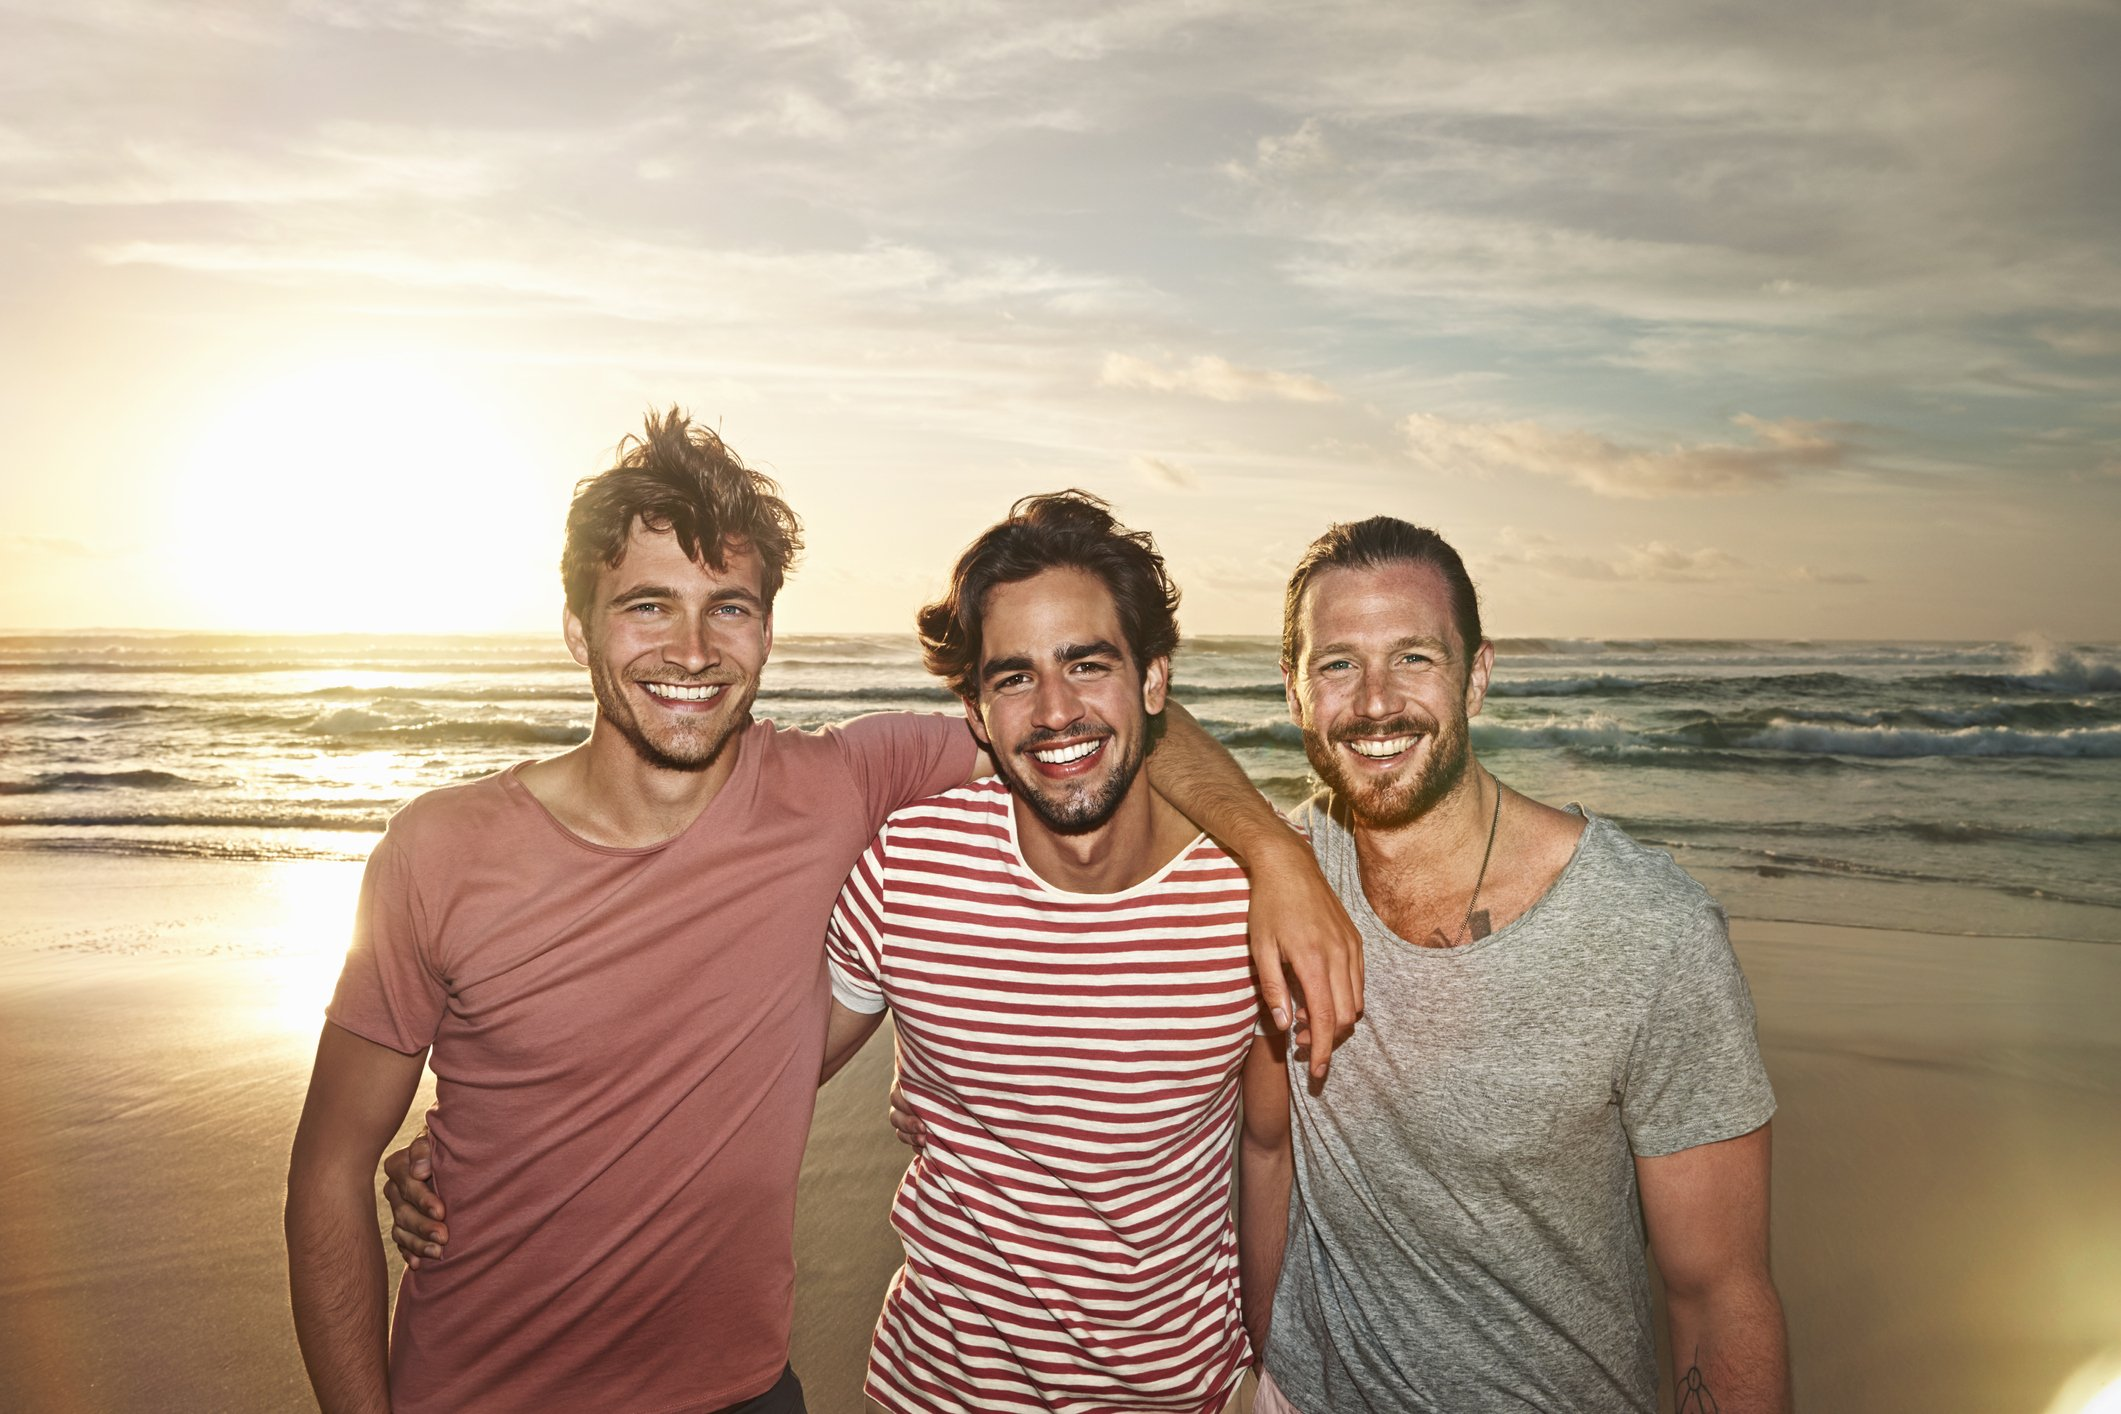 Three male friends on the beach smiling. | Photo: Getty Images